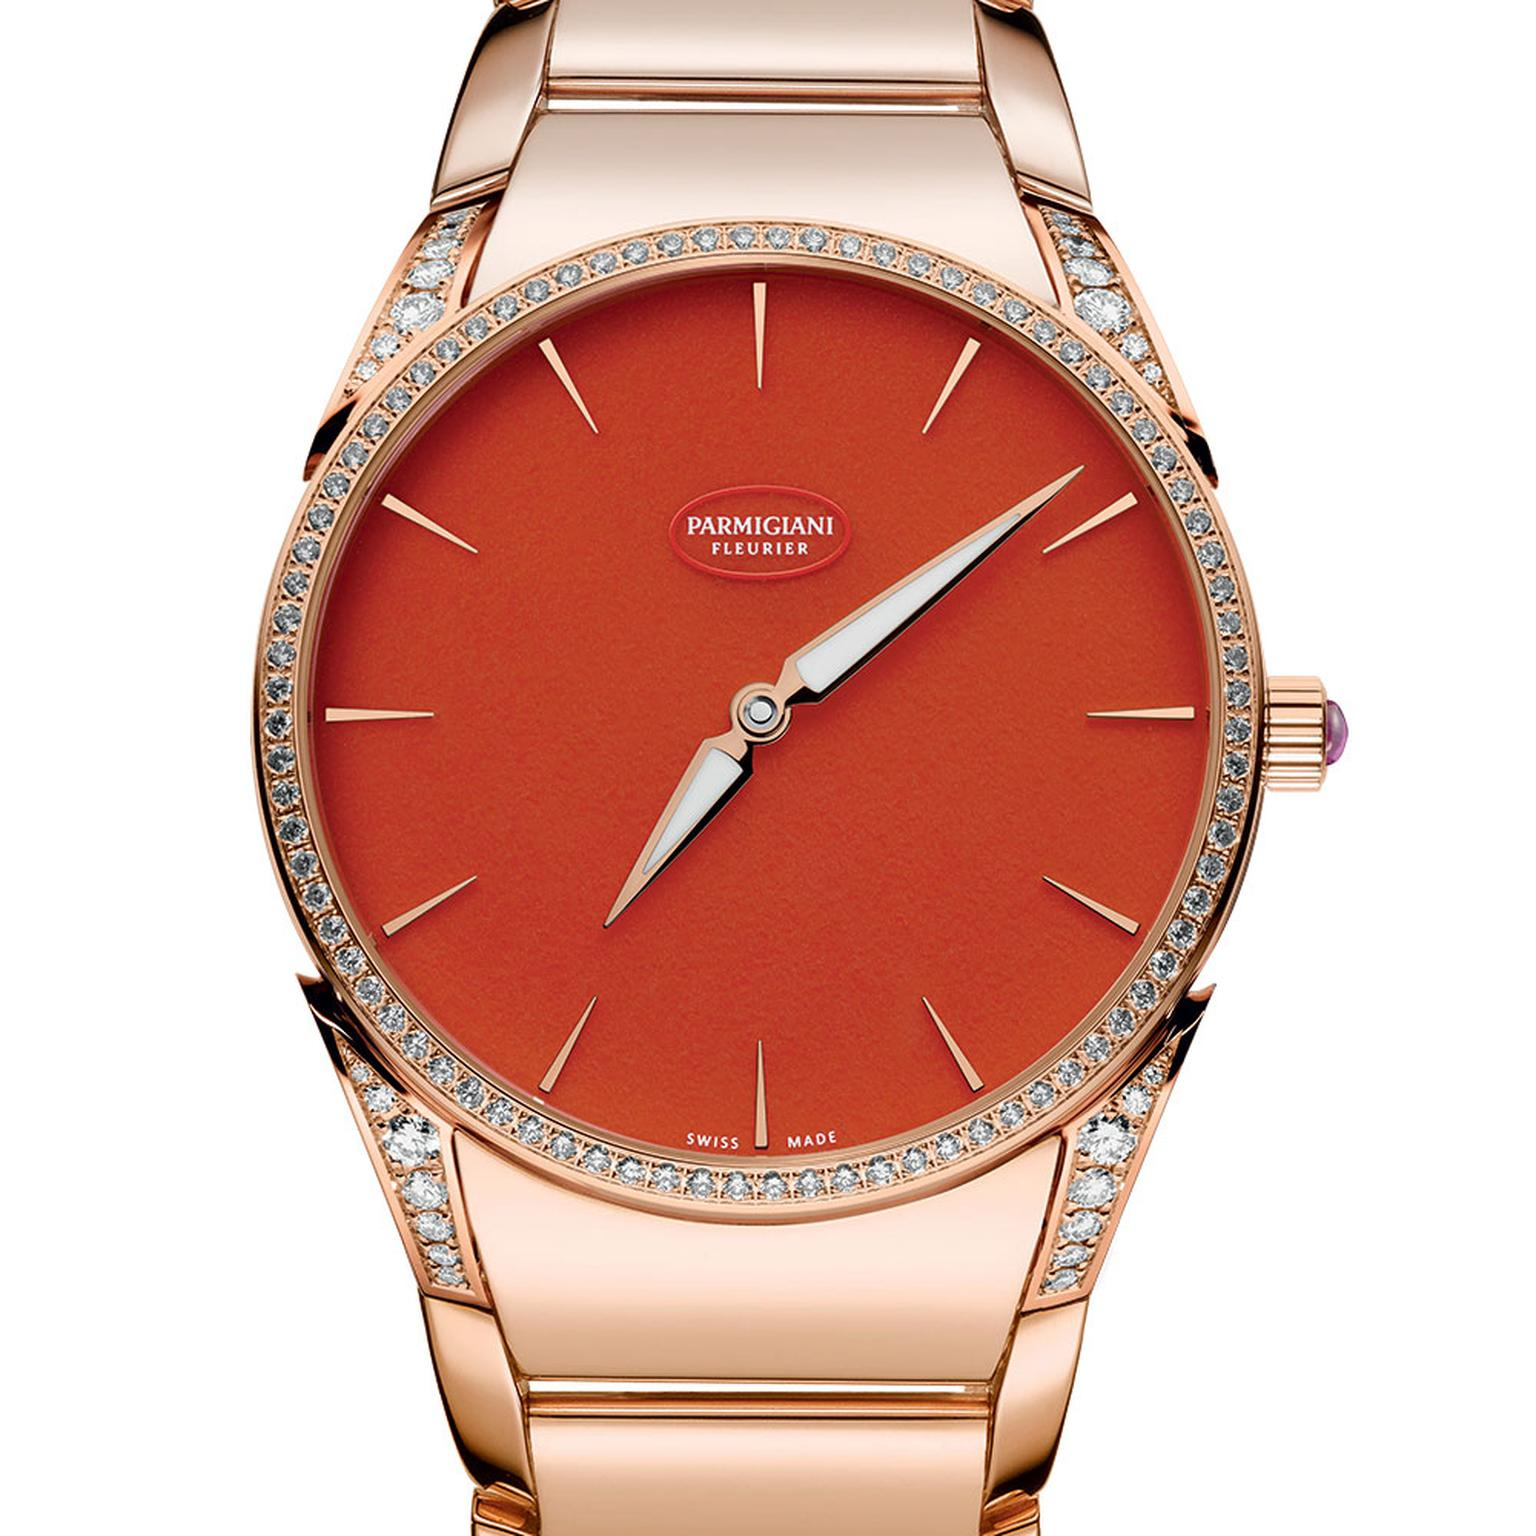 Parmigiani Tonda 1950 Poppy watch